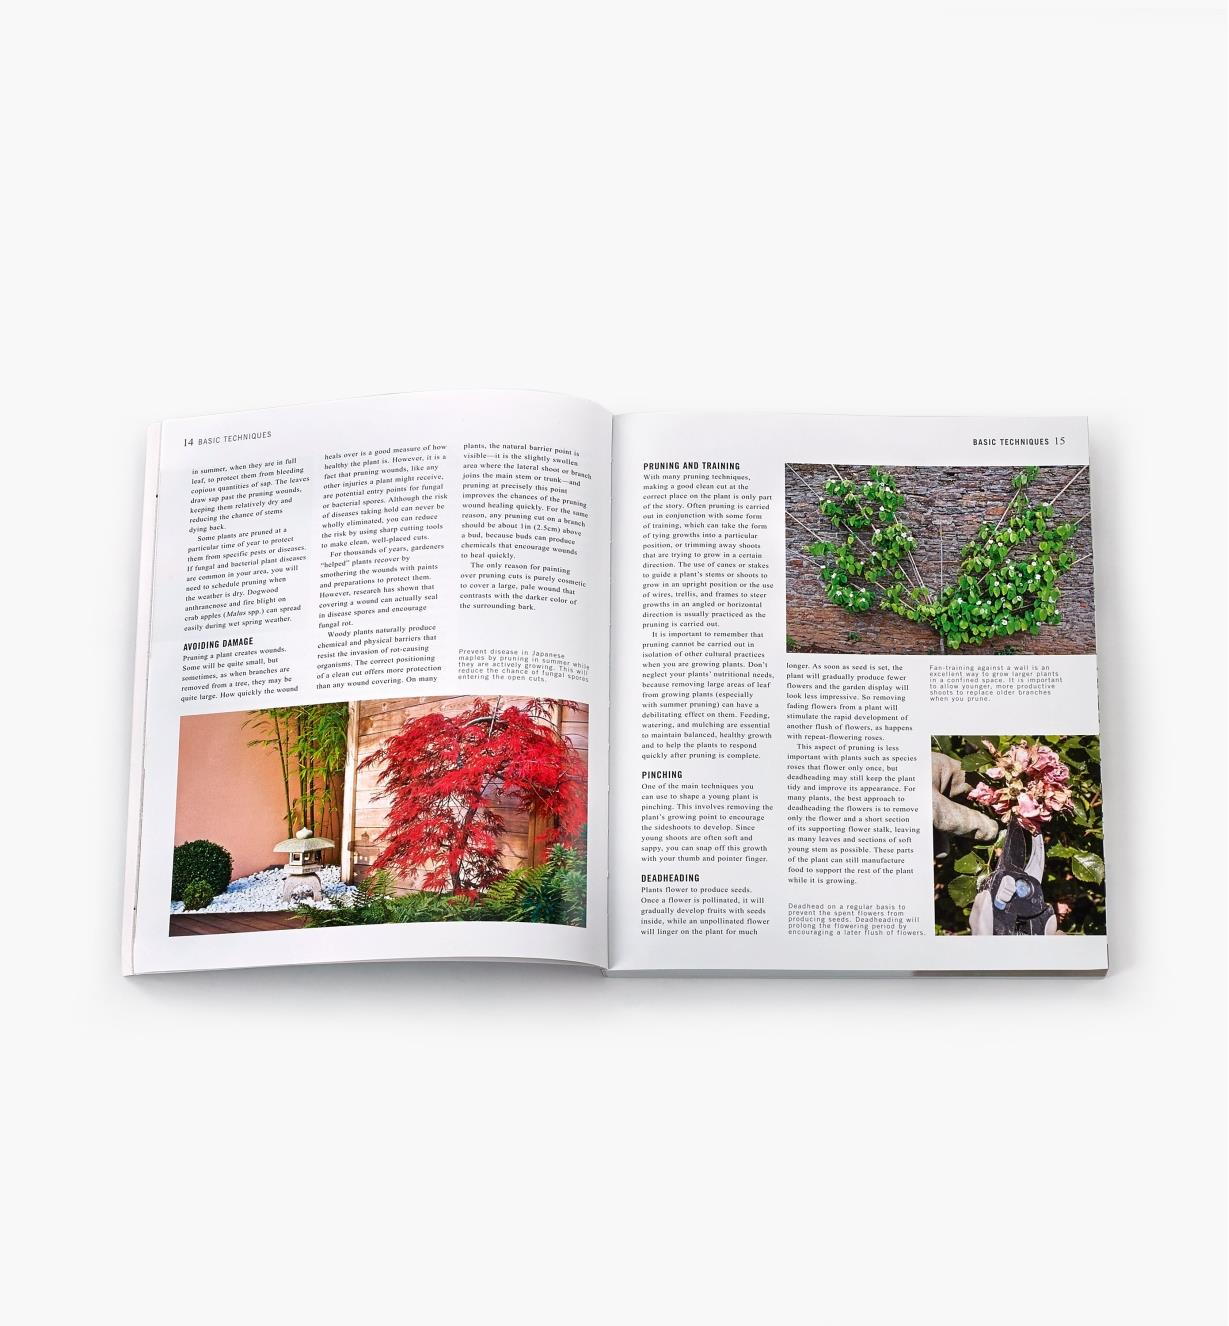 Two-page spread in Pruning Simplified with photos and text explaining how to shape plants, enhance their growth, promote flowering and avoid damage to plants when pruning